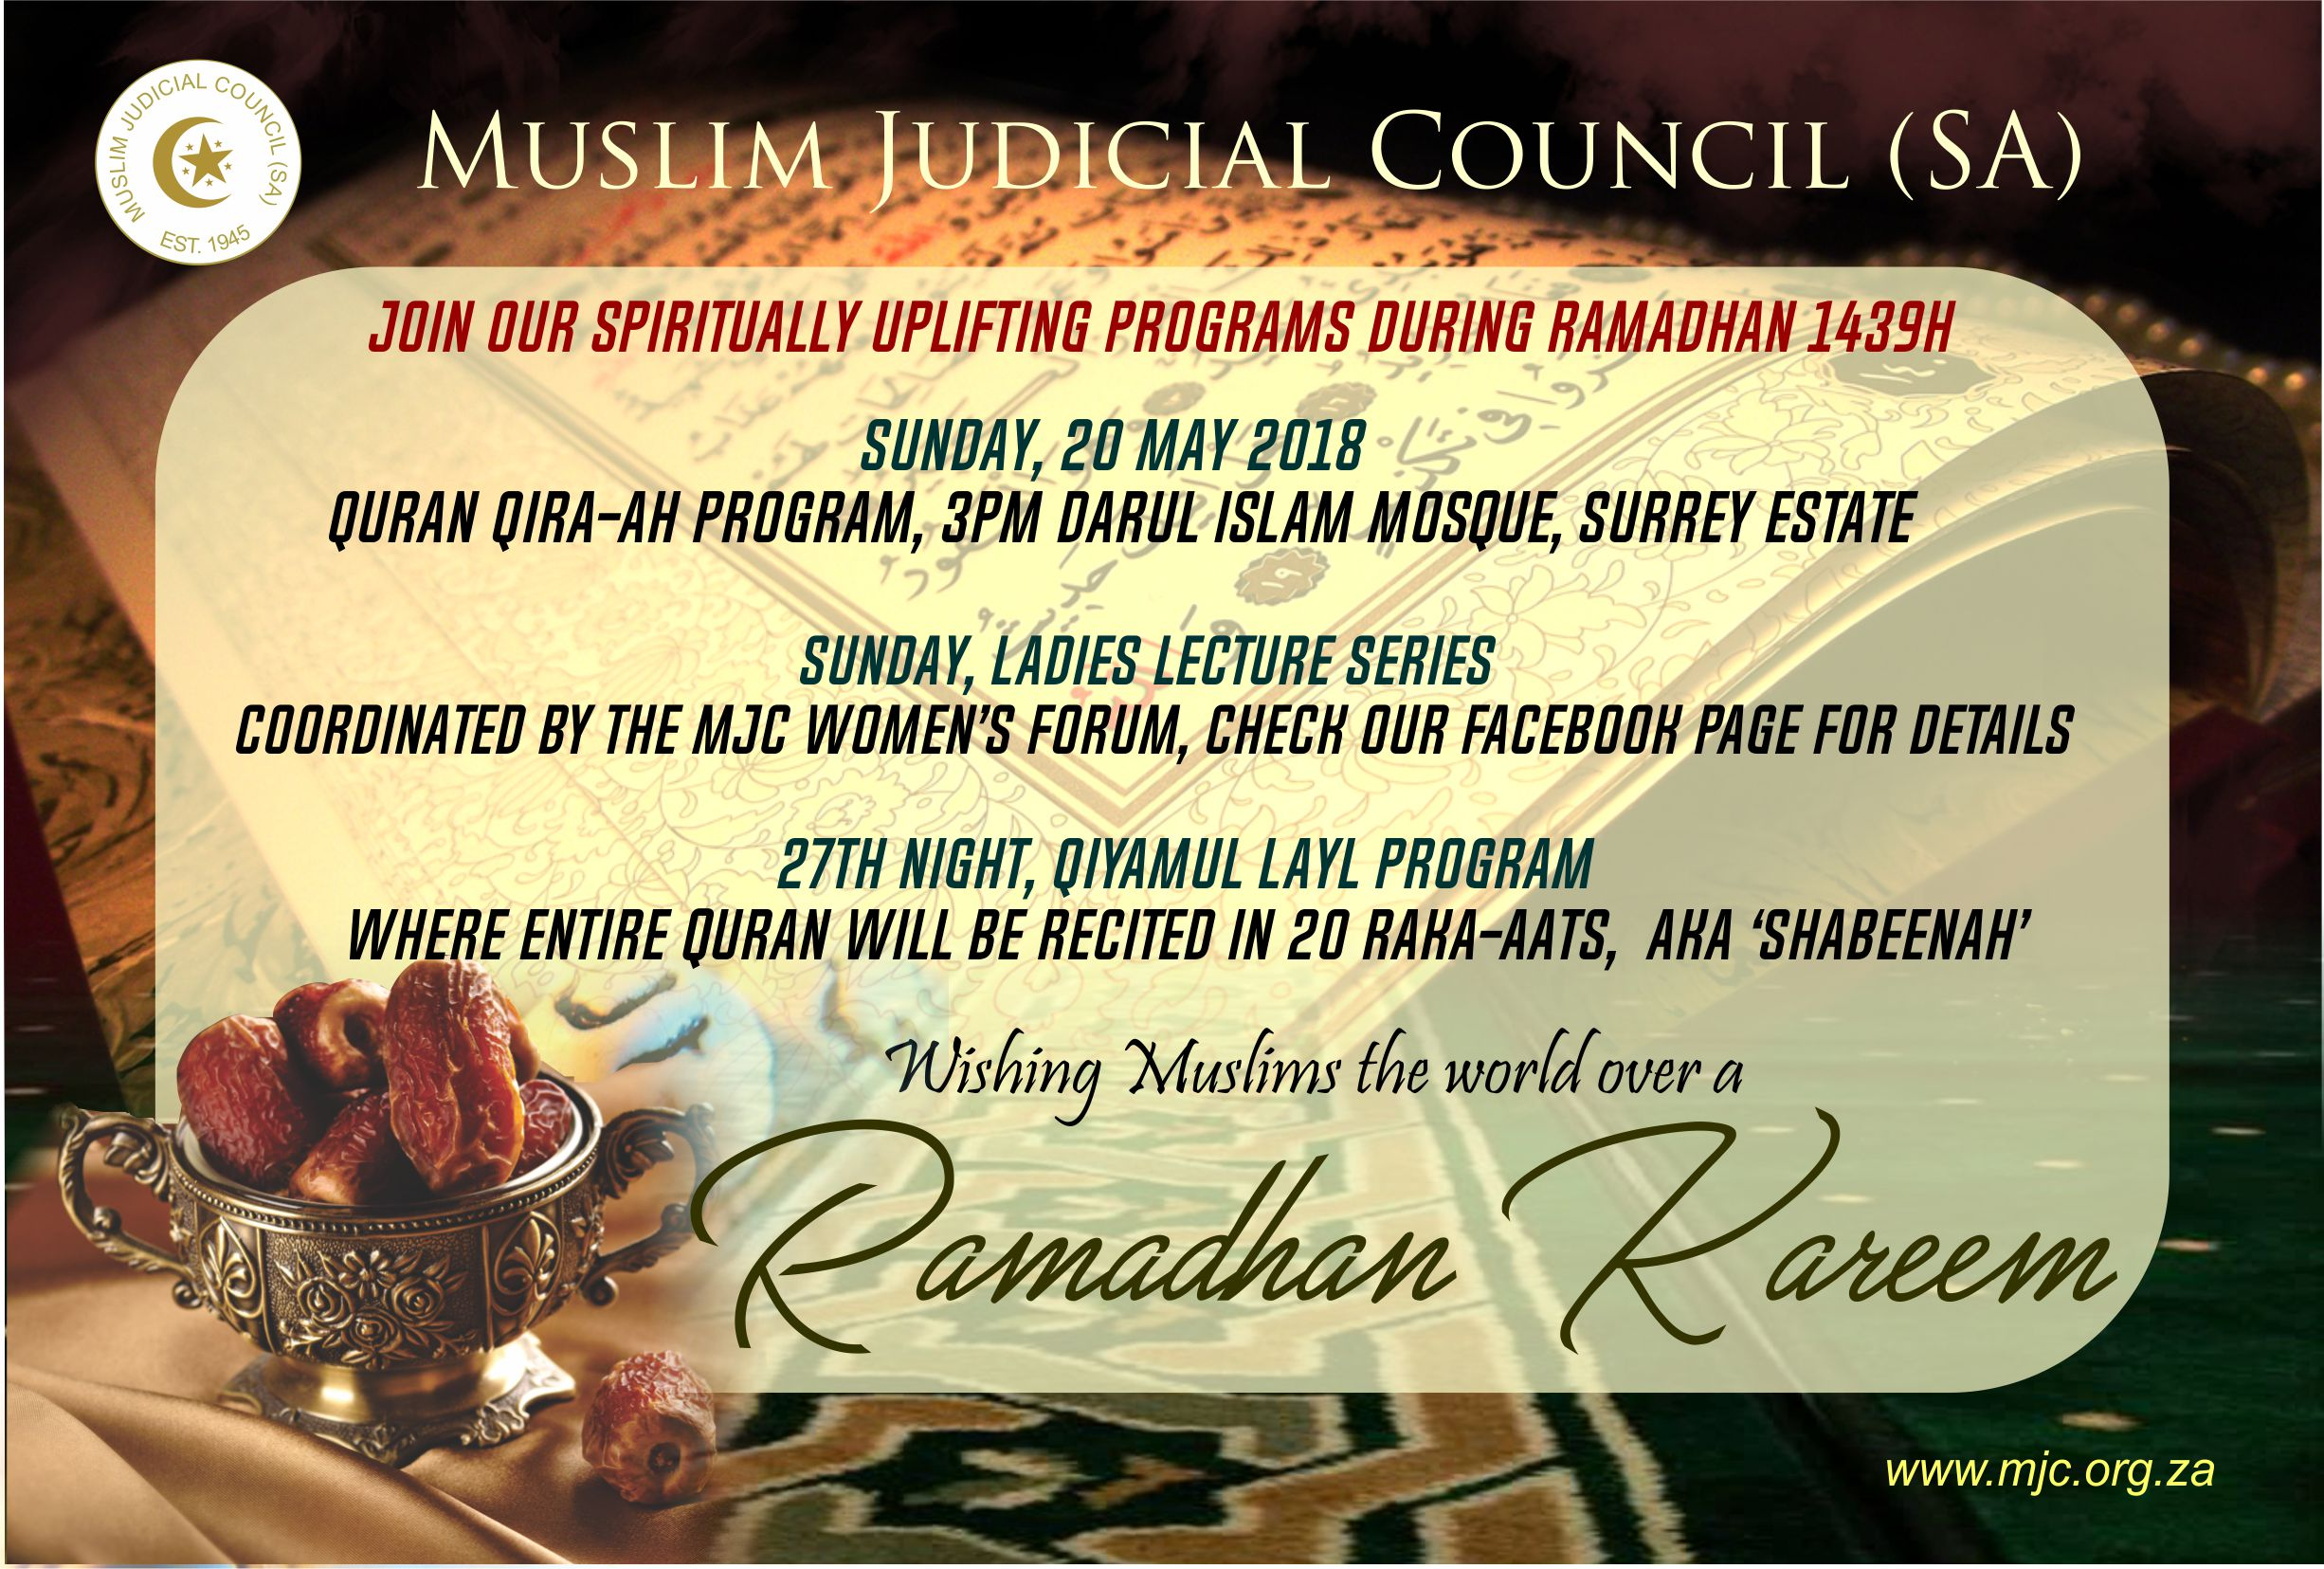 ramadan kareem from the president of the mjc - Islam Today Advert - Ramadan Kareem from the President of the MJC